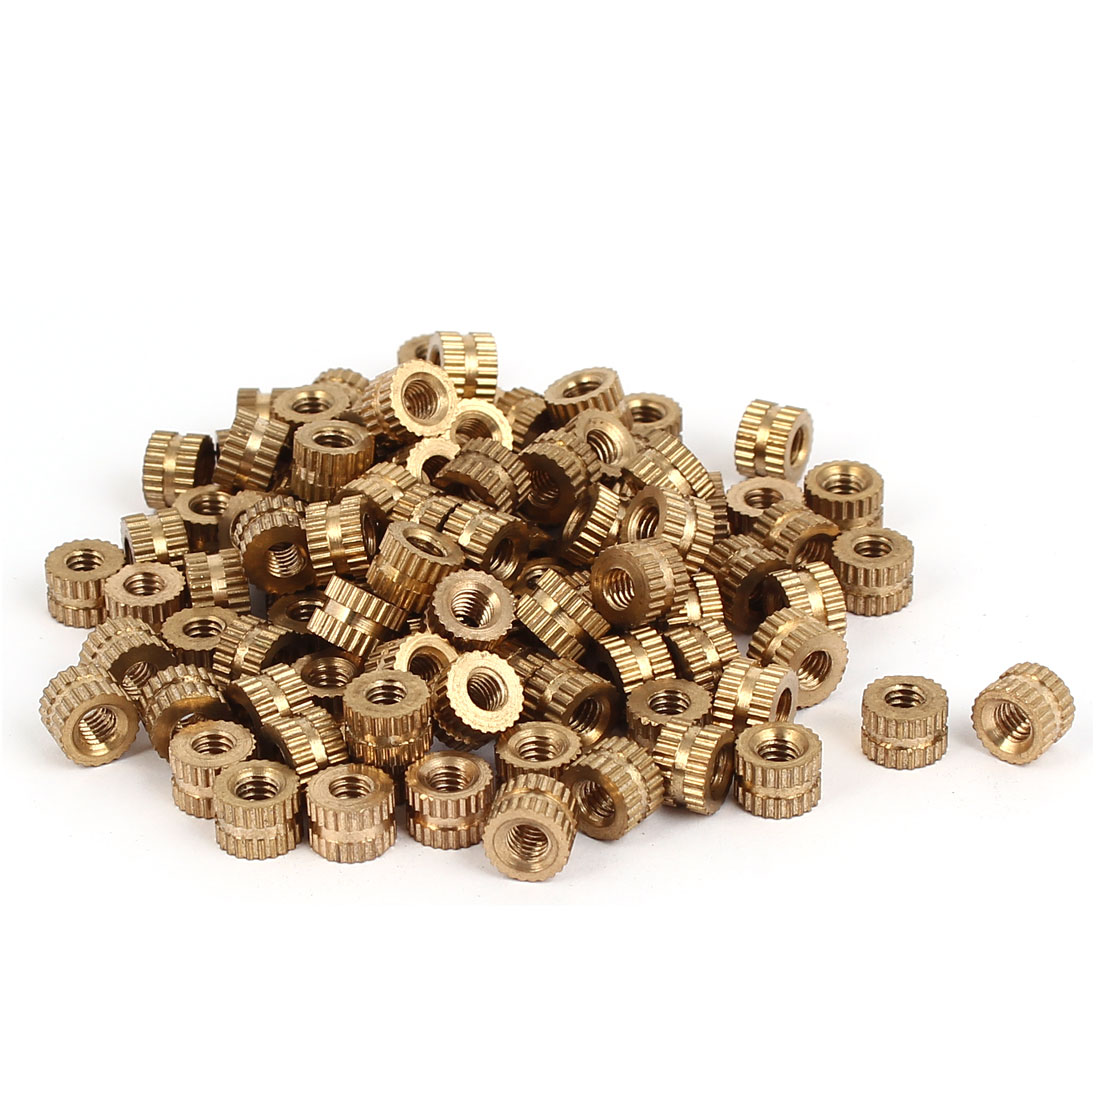 M4 x 5mm Brass Cylinder Injection Molding Knurled Threaded Insert Nuts 100PCS